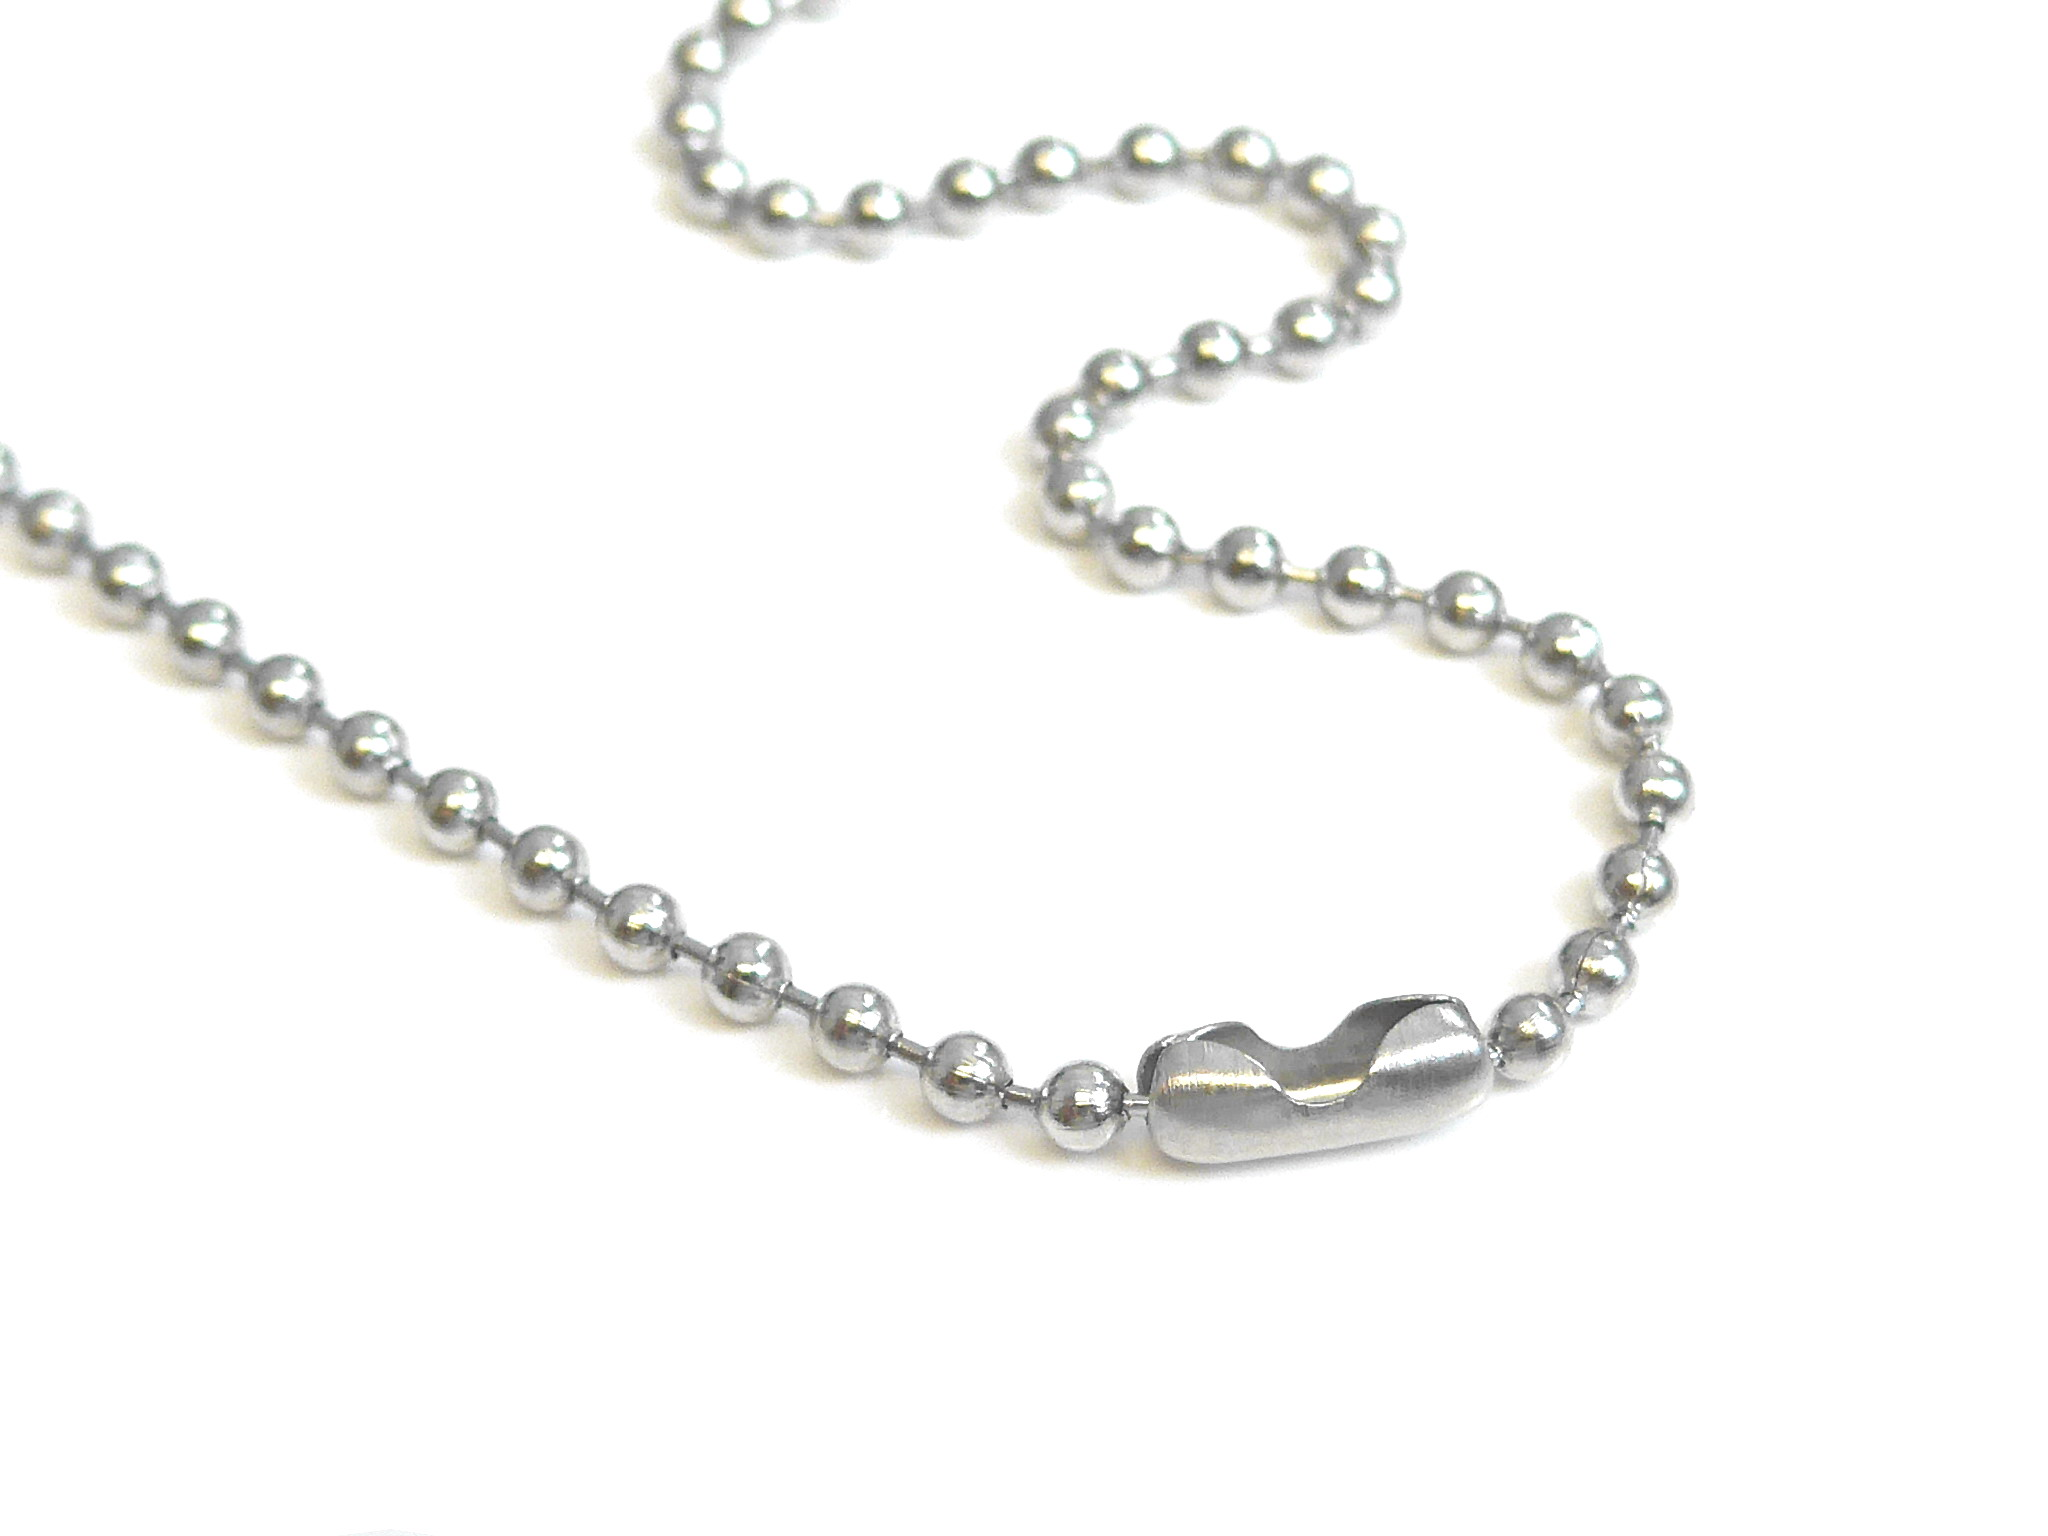 Stainless Steel Ball Chain Necklace 30 Inches 2.4mm Size